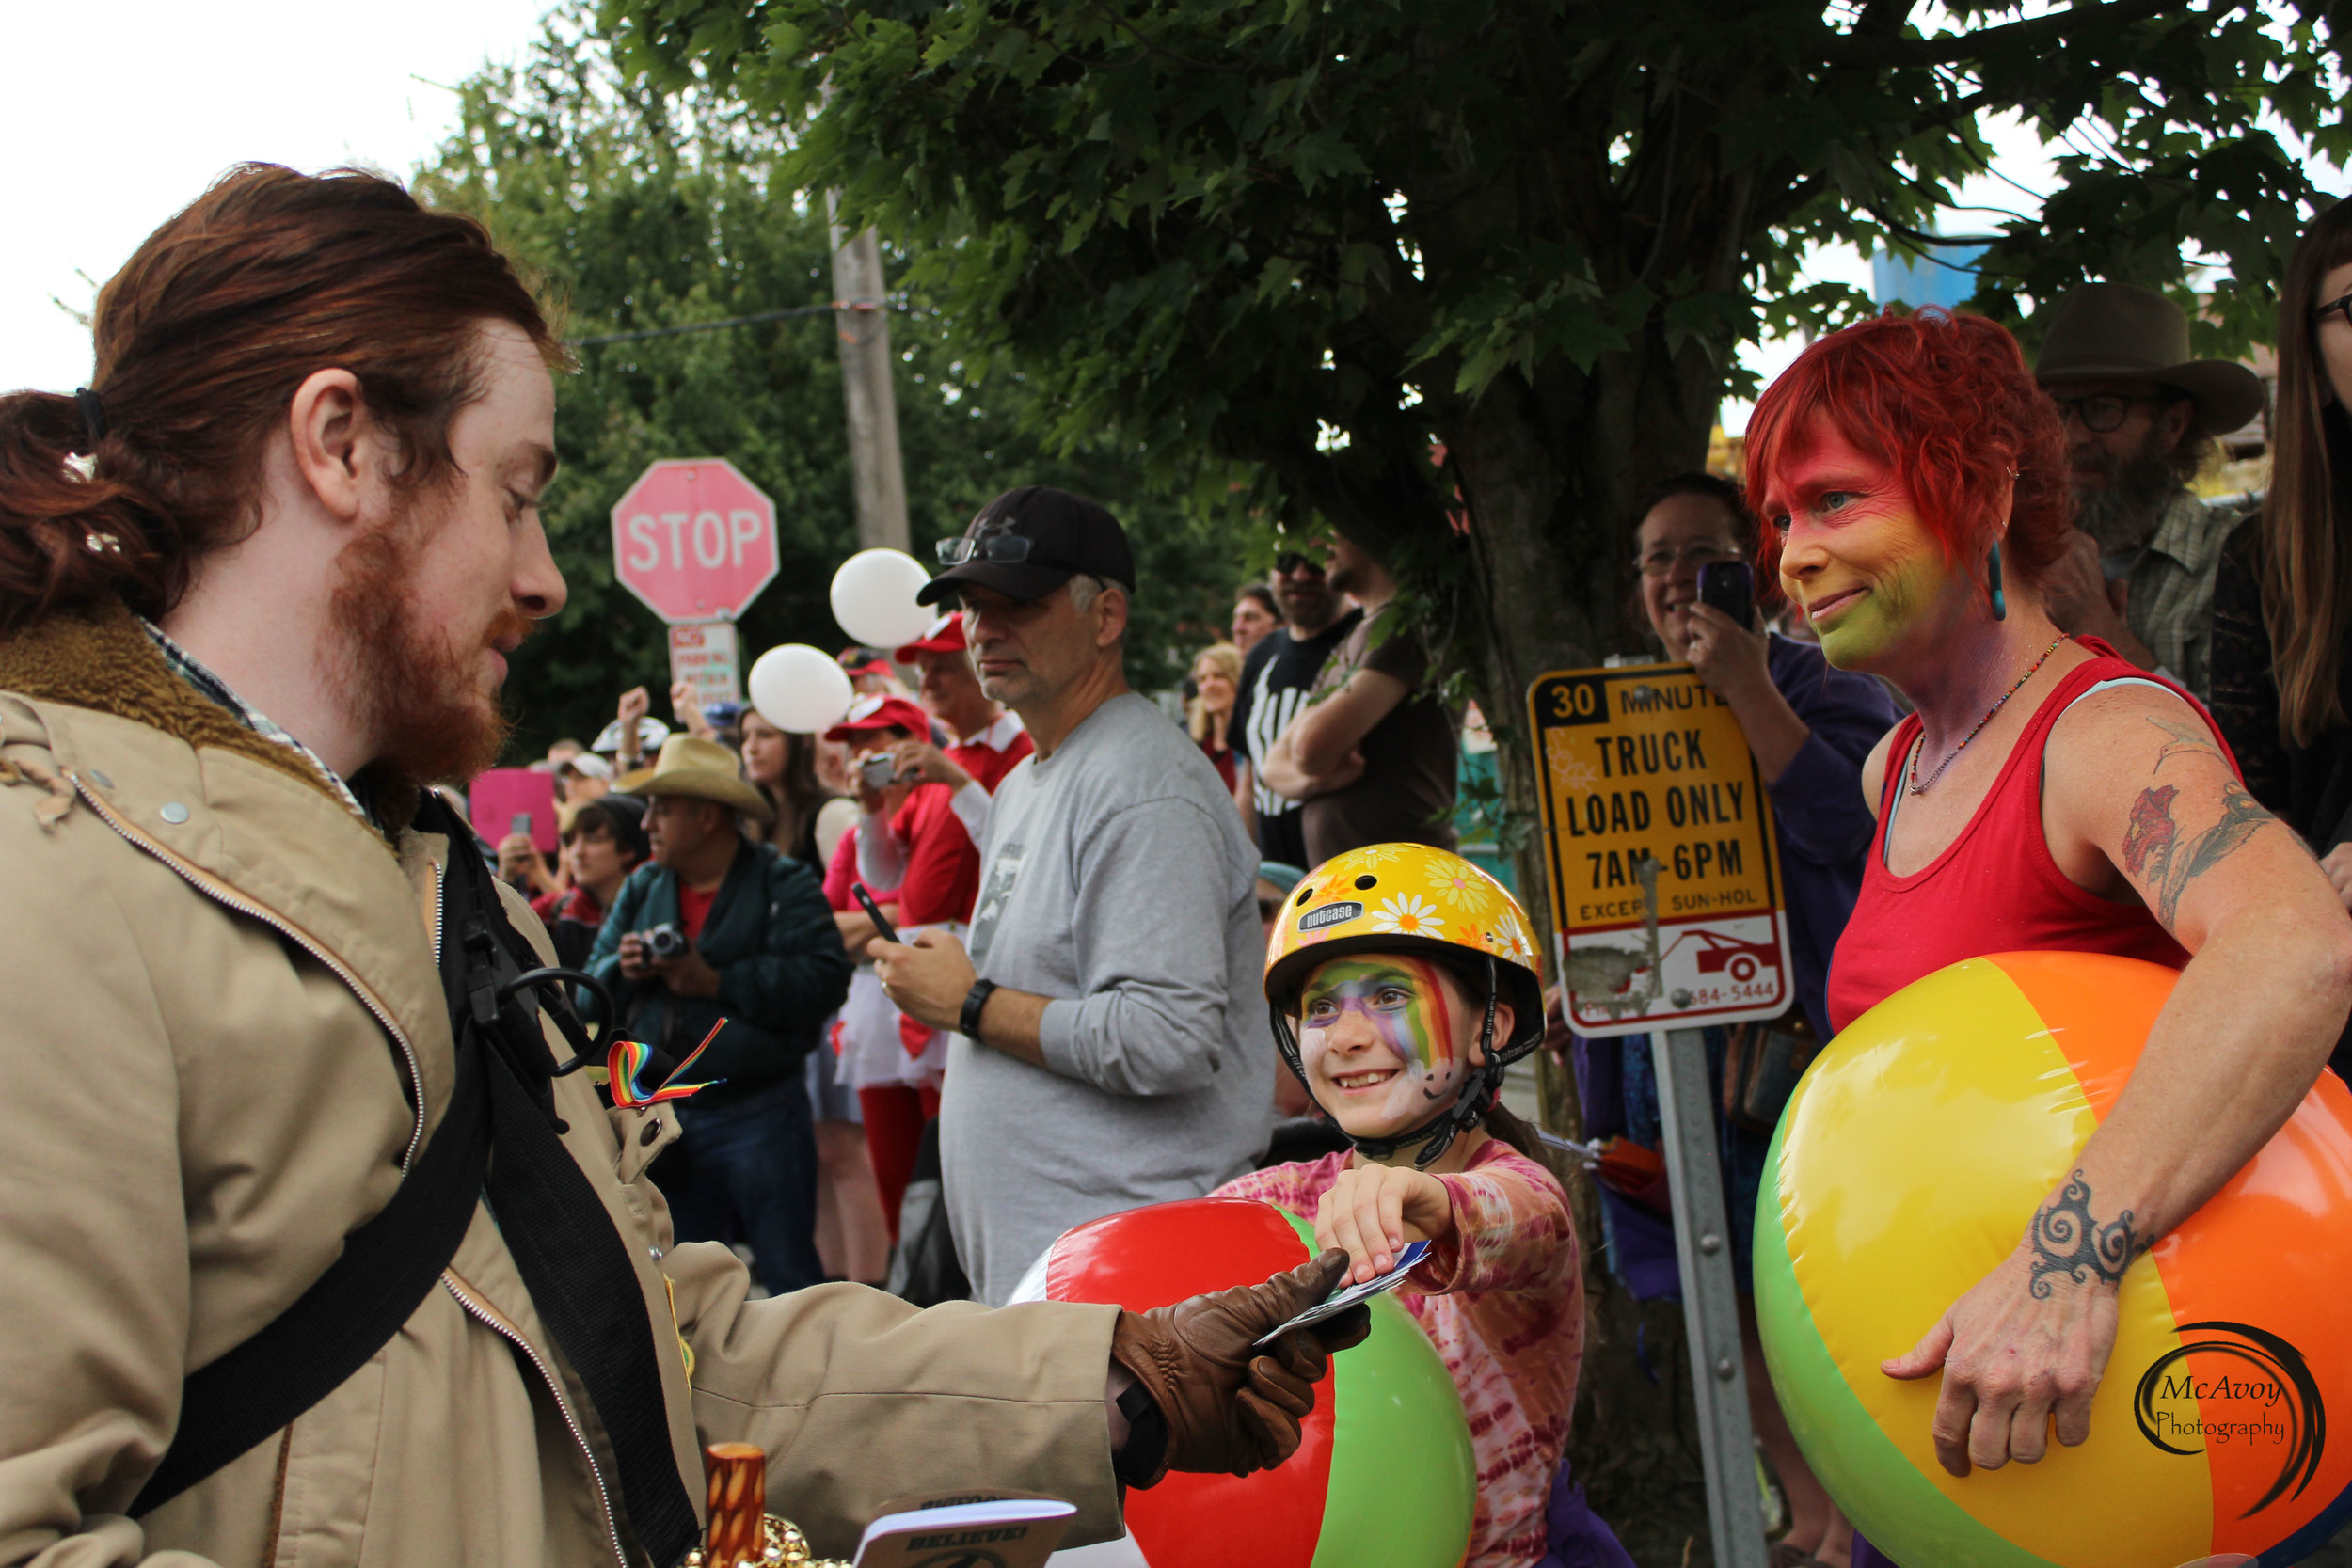 CascadiaNow! Communications Officer Tanner Colvin dressed up as a Sasquatch denier searching for the mythical creature. Colvin and other parade ensemble members interacted with parade viewers and handed out Cascadia flag stickers.